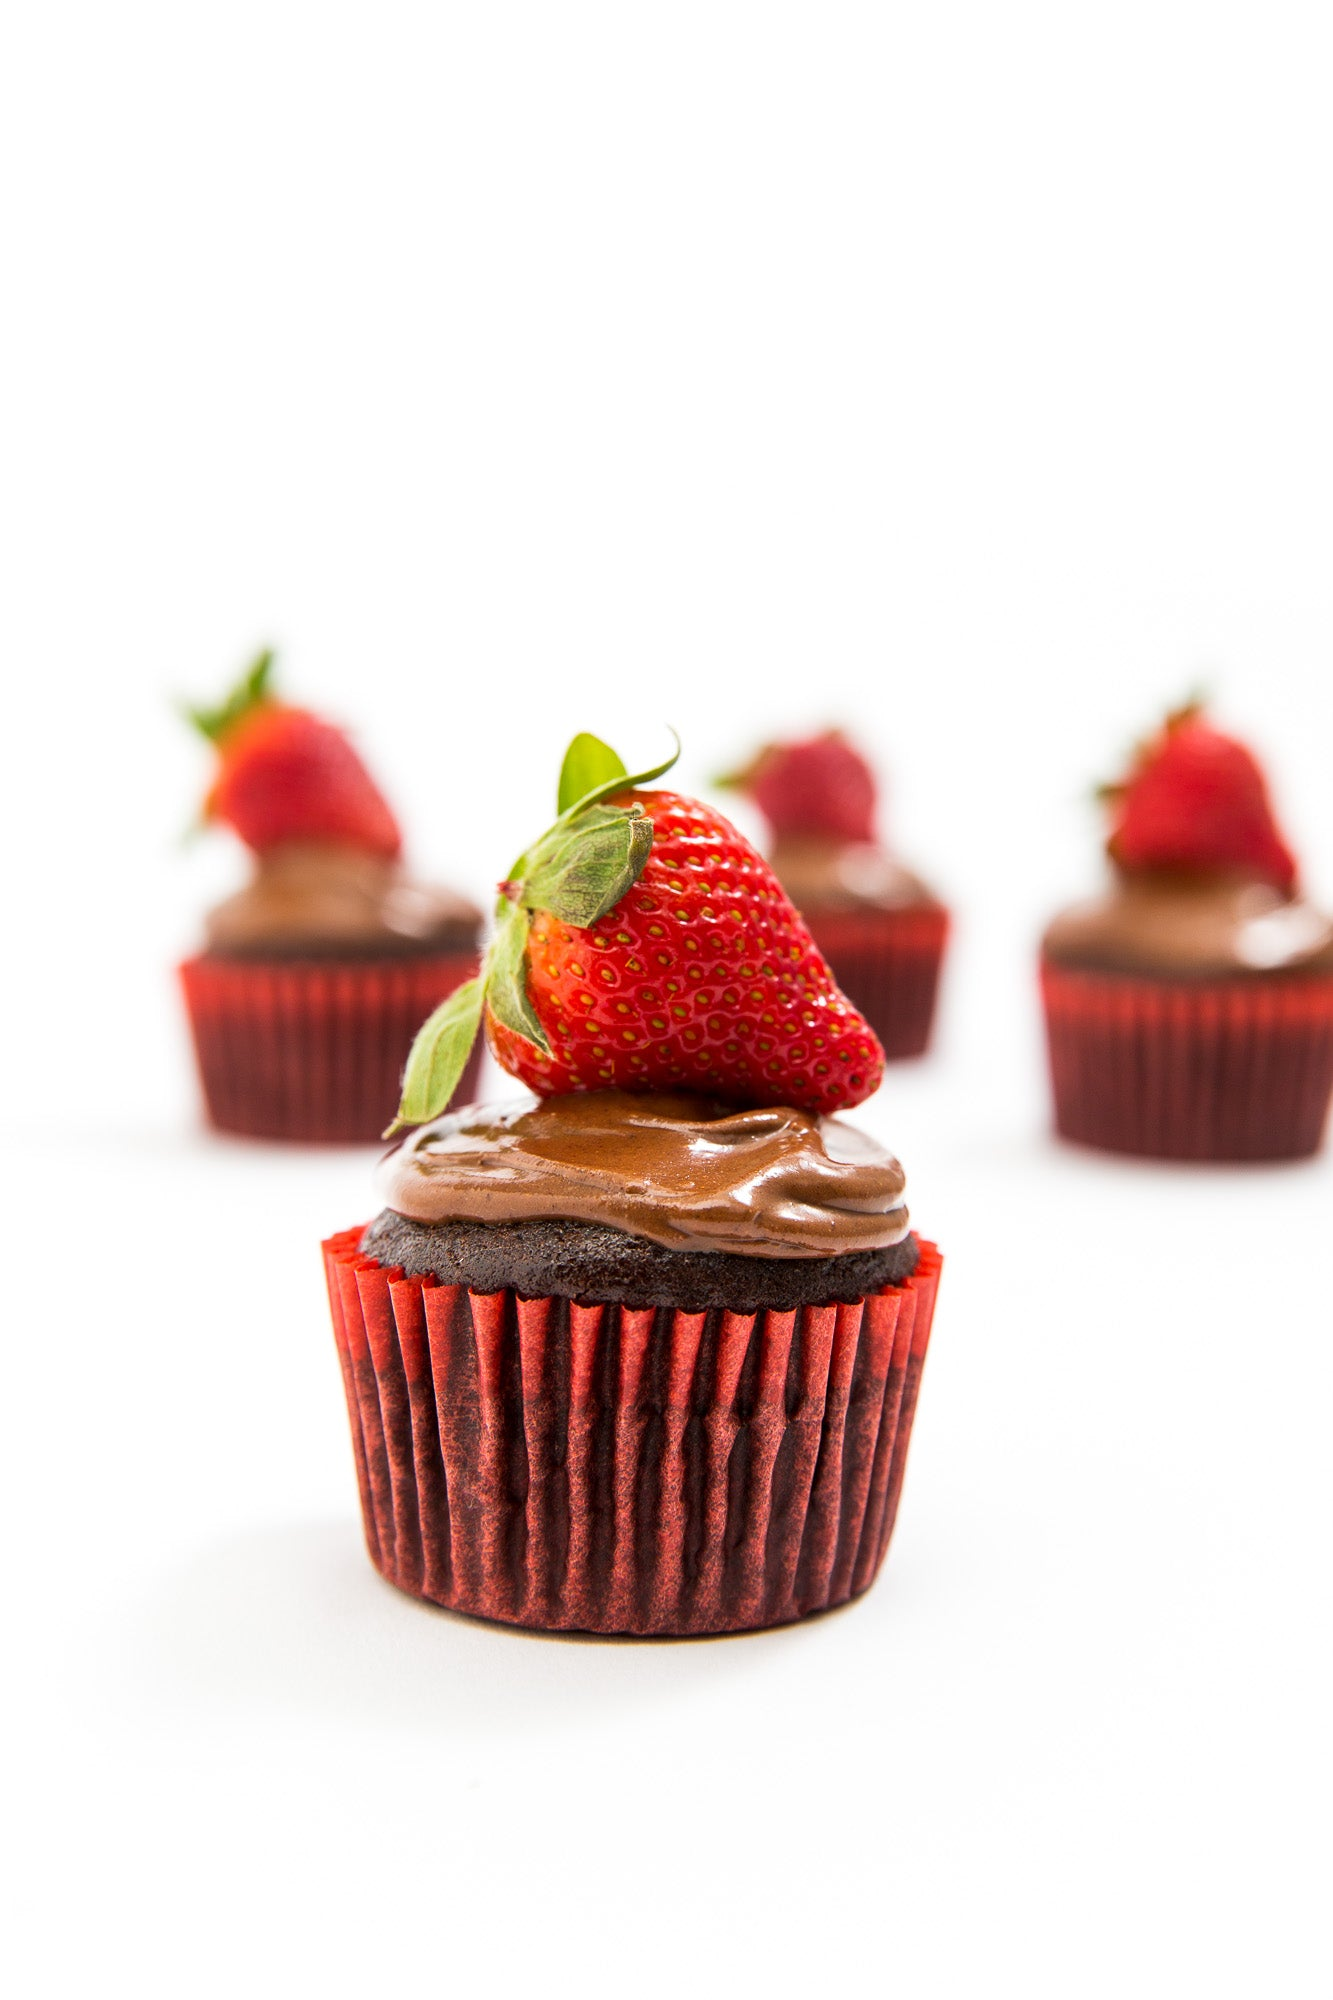 A close up of one Miss Jones Baking Co Chocolate Hazelnut Strawberry Cupcakes in front of three other Miss Jones Baking Co Chocolate Hazelnut Strawberry Cupcakes